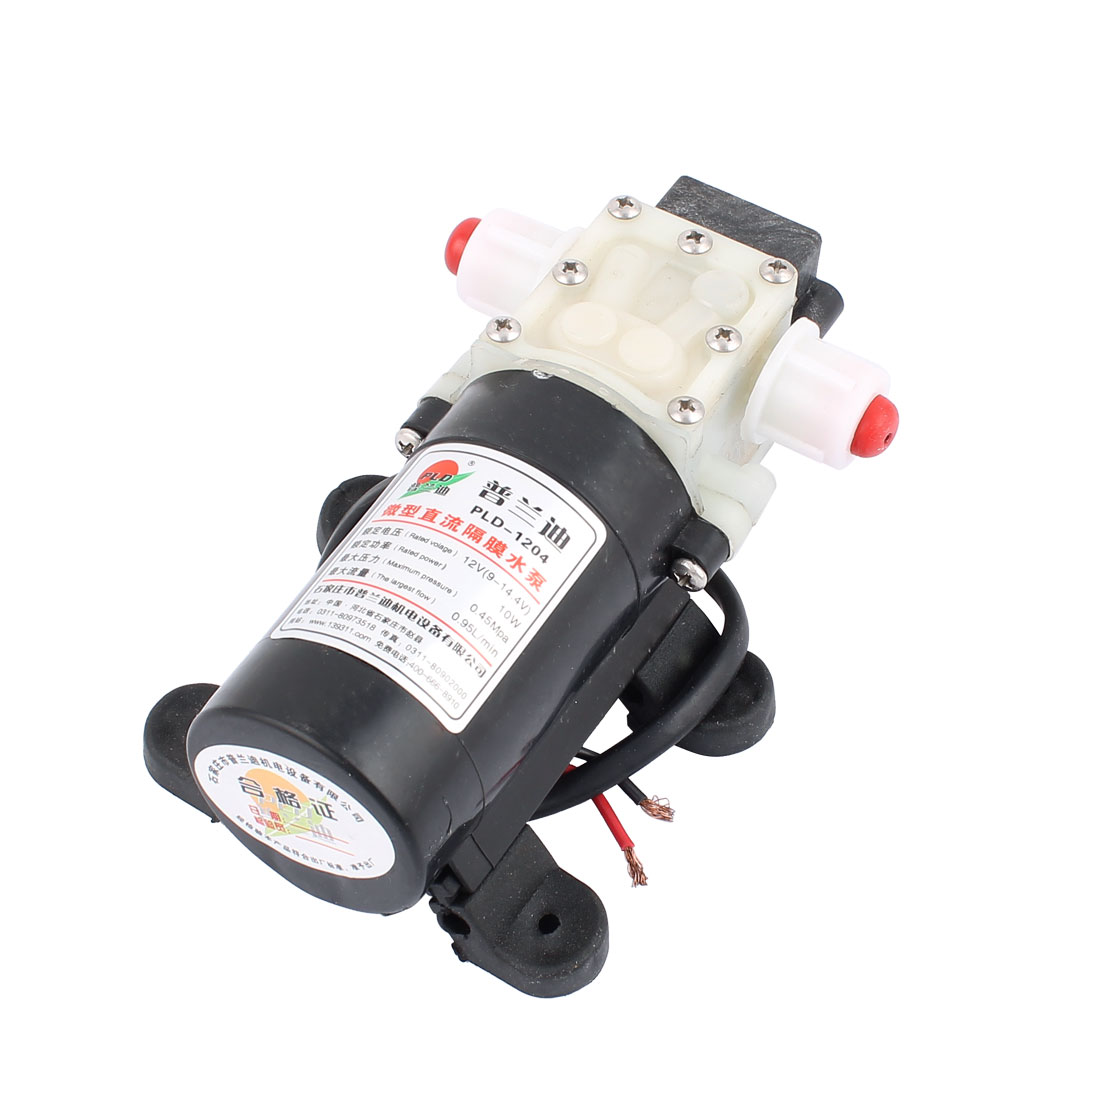 DC 12V 10W Micro Motor Pump 10mm Thread Outlet Inlet Diaphragm Pump